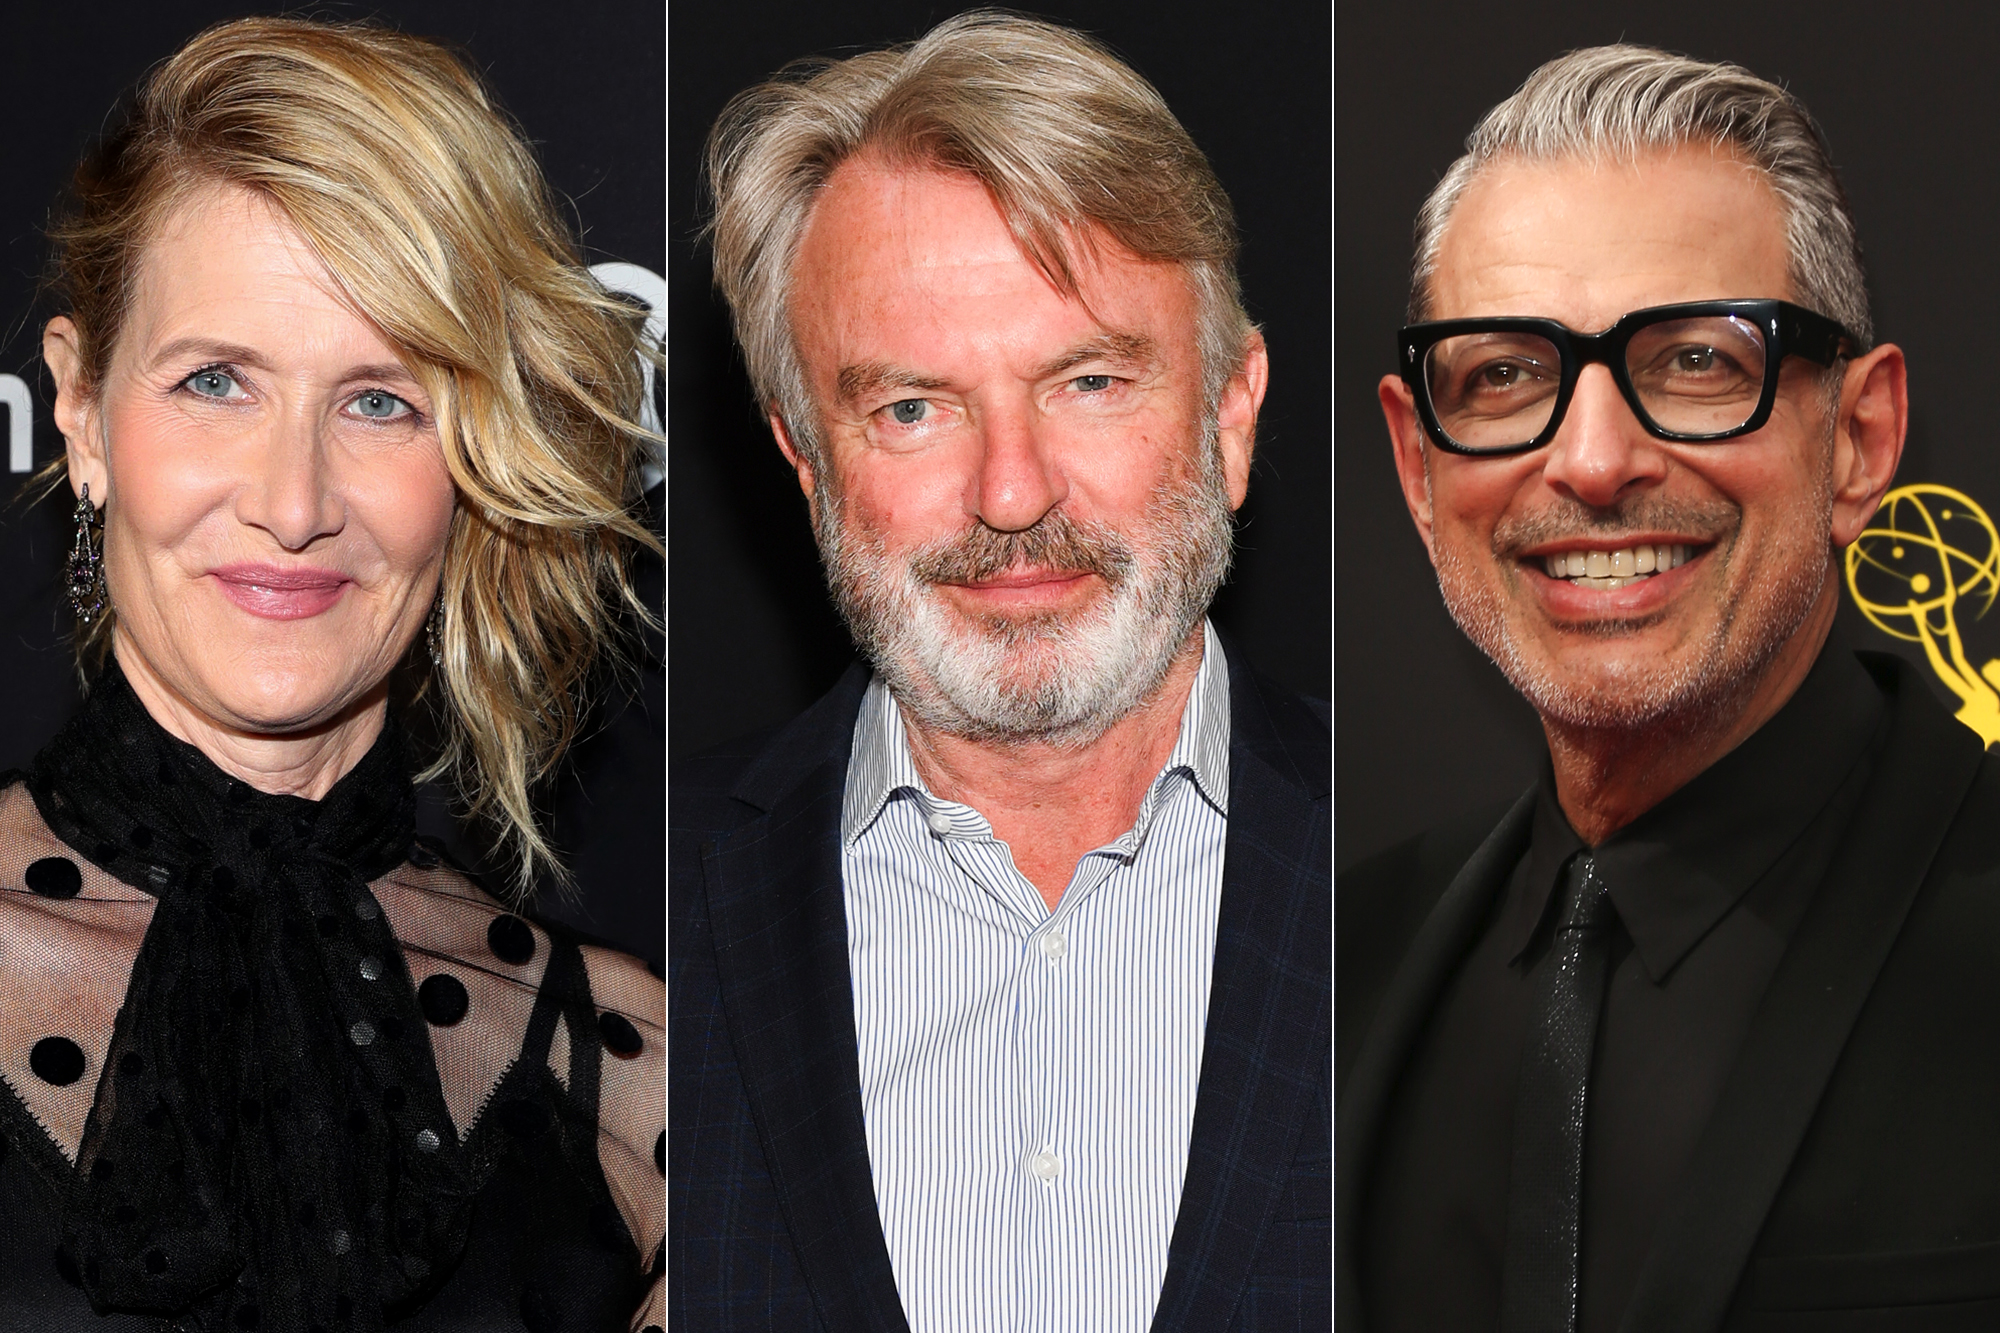 Jurassic World 3 confirma el regreso de Jeff Goldblum, Laura Dern y Sam Neill